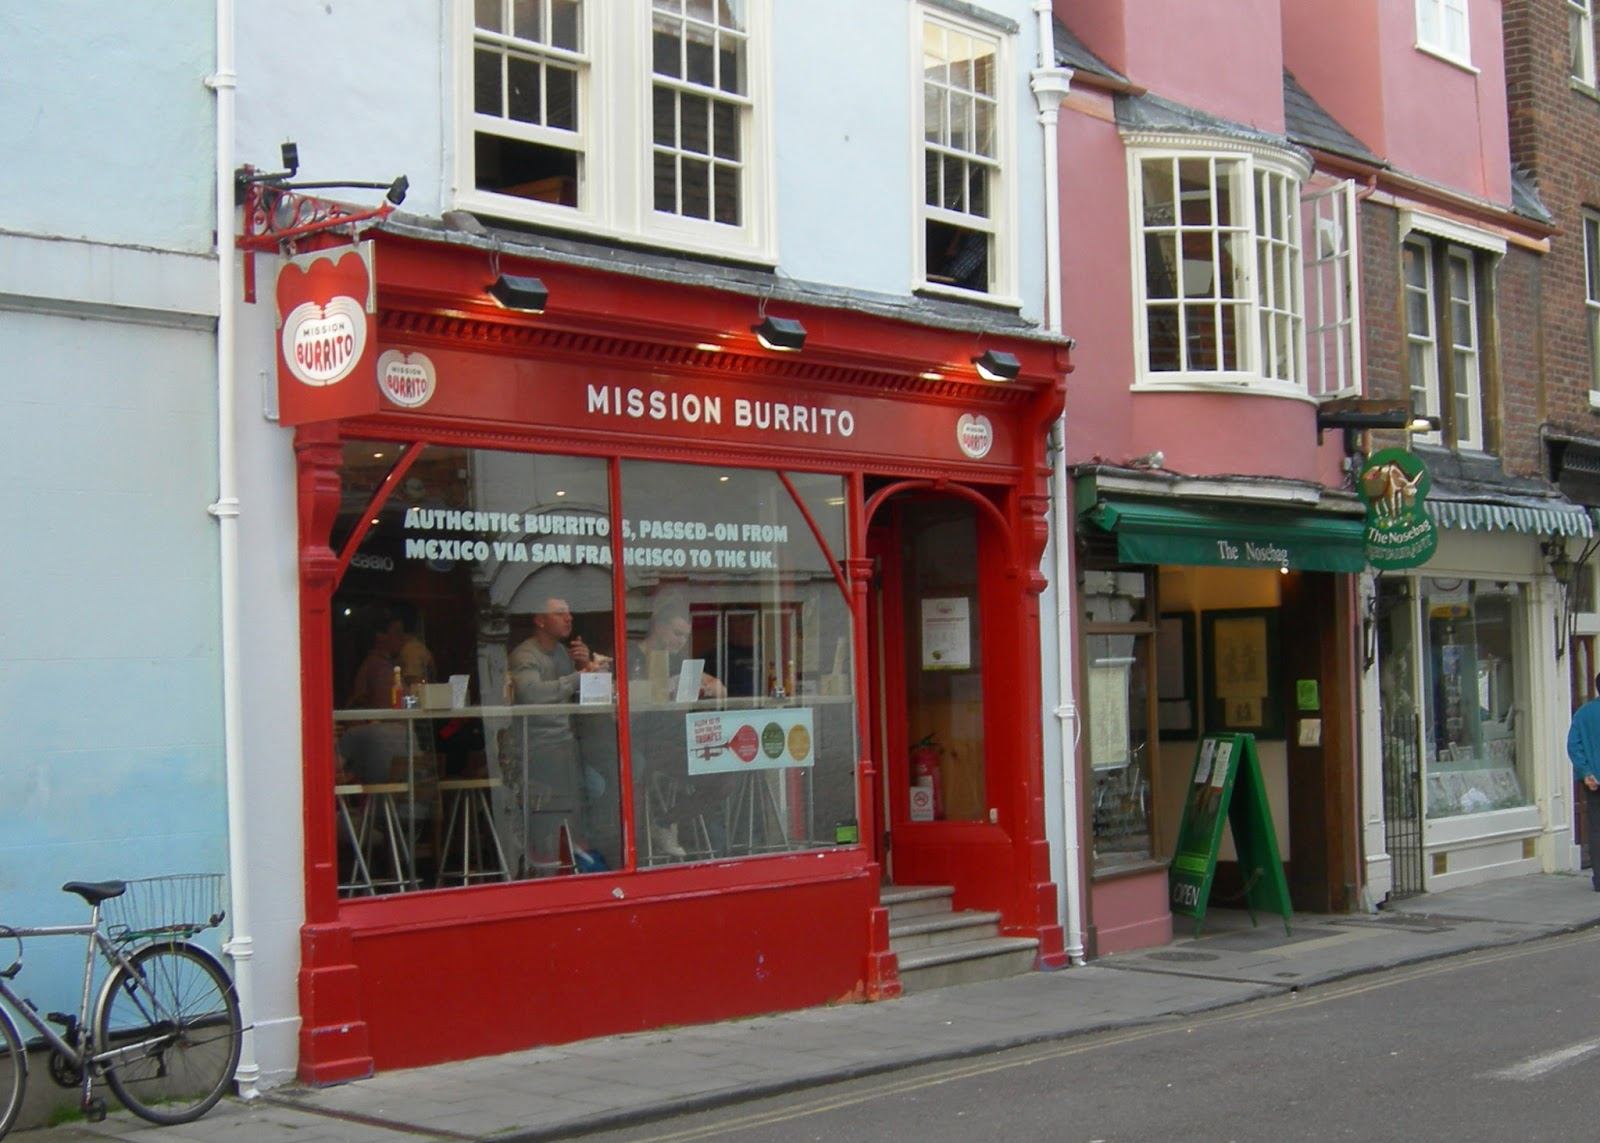 Mission Burrito cafe in Oxford